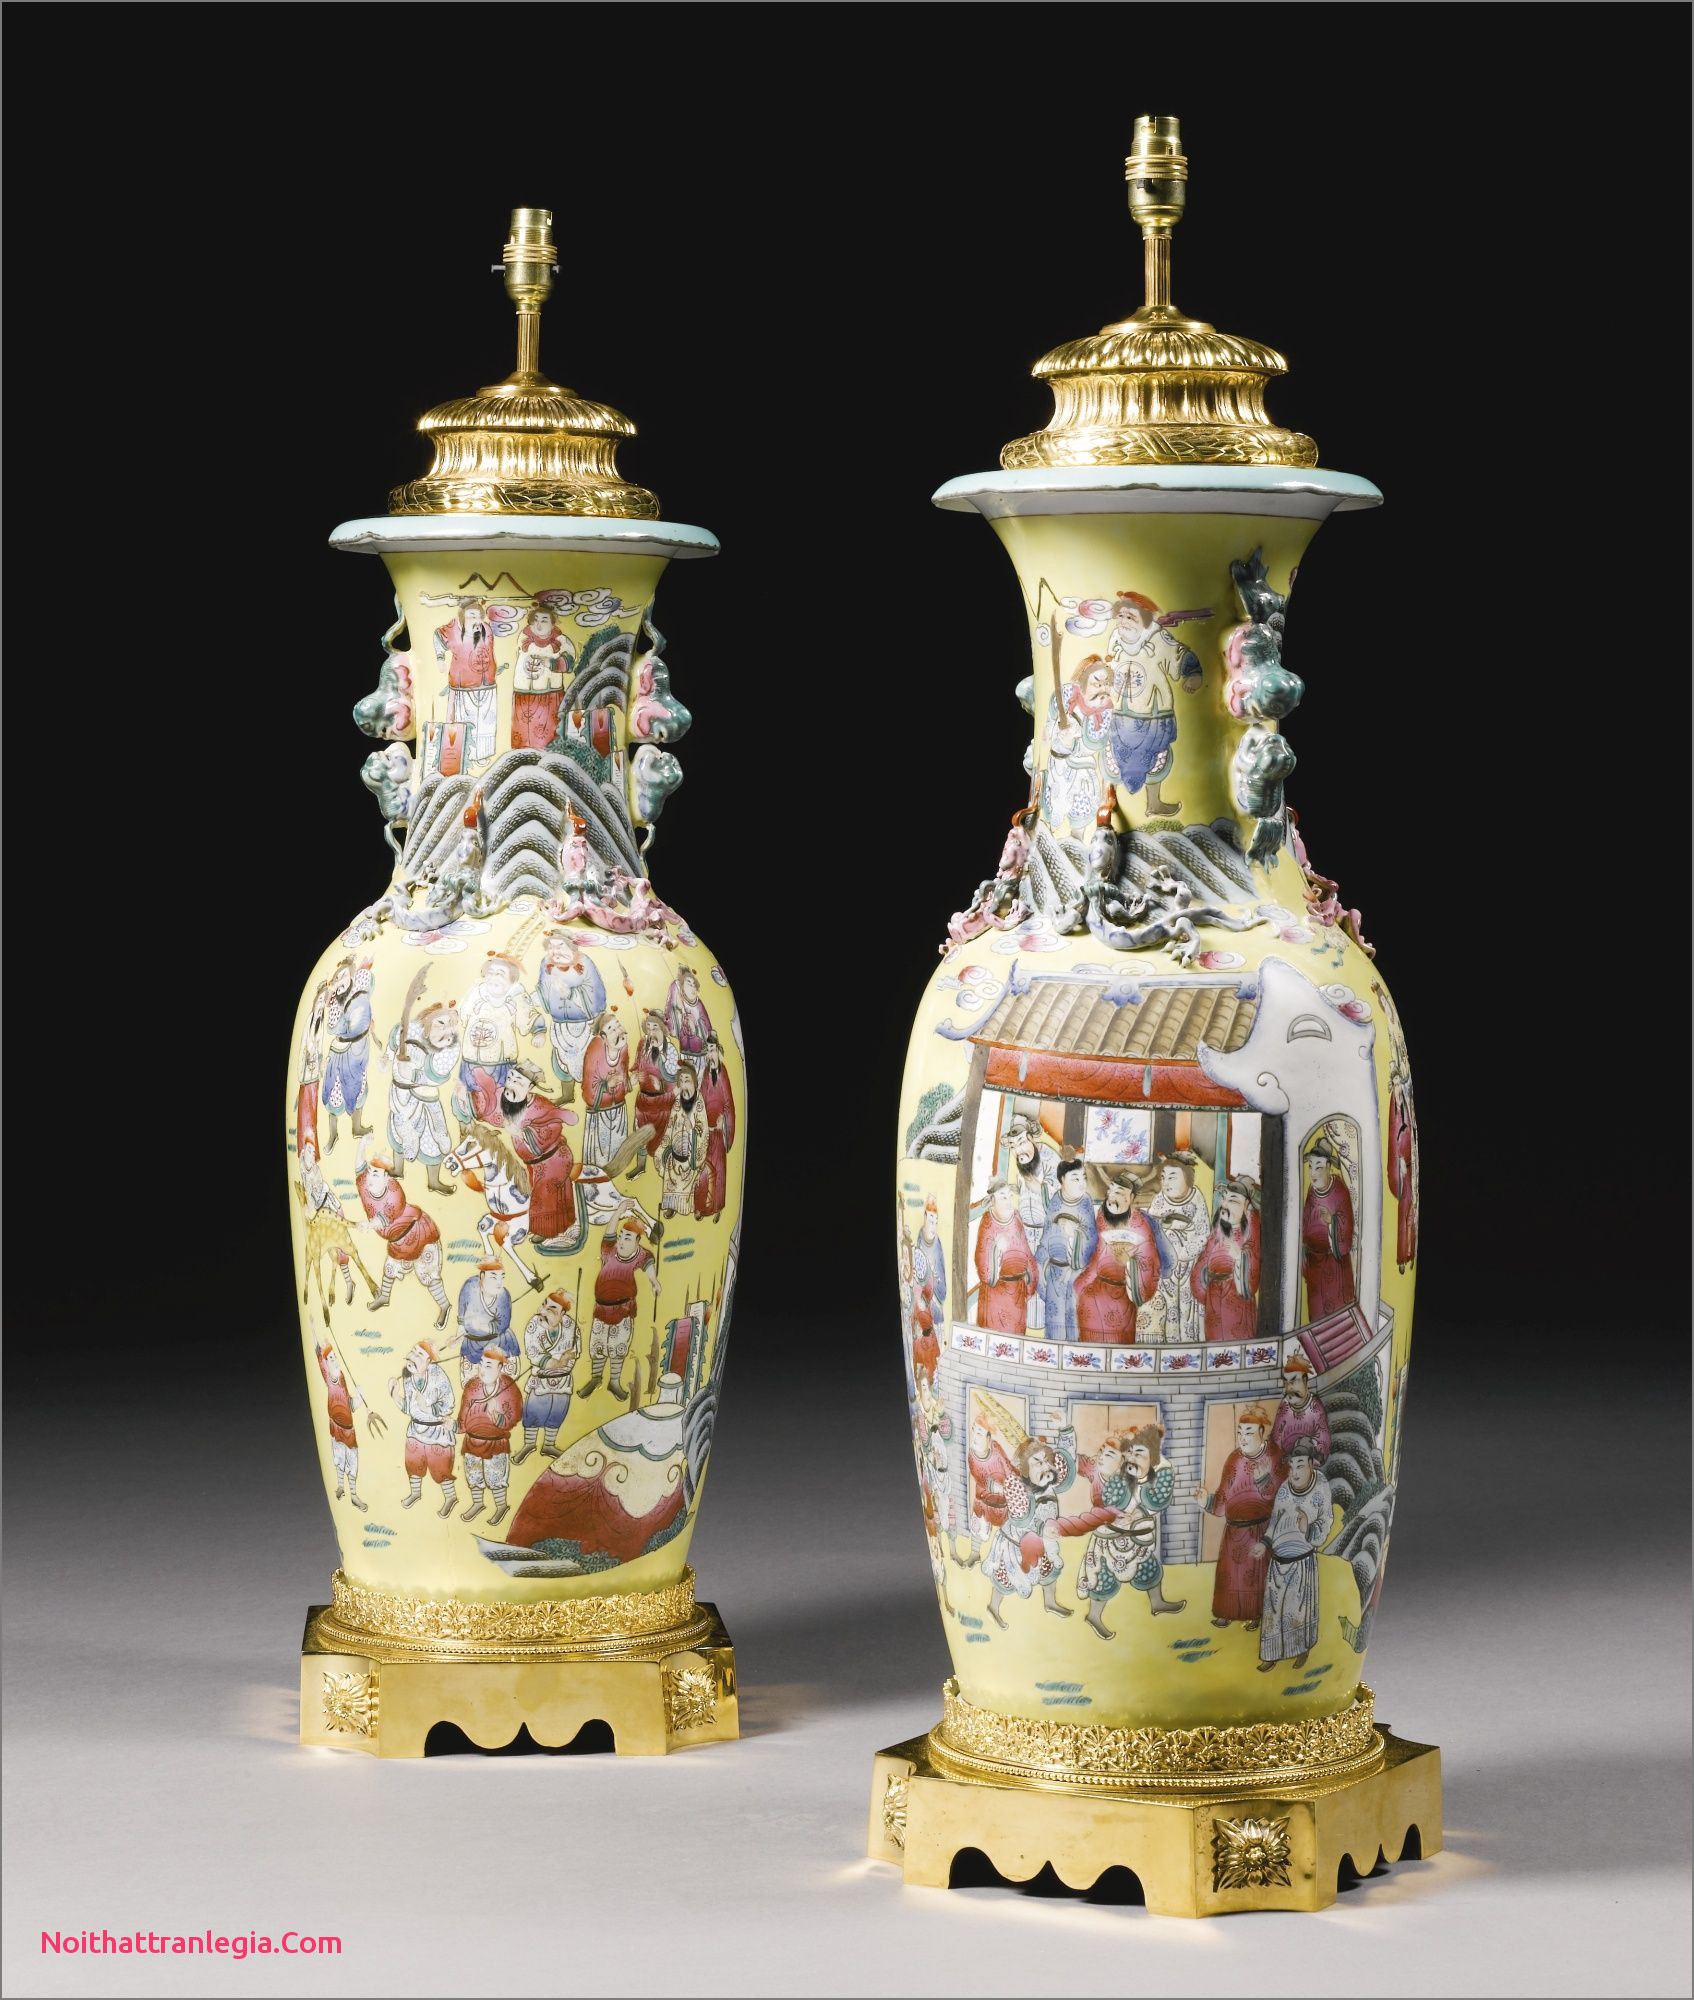 ceramic vase with lid of 20 chinese antique vase noithattranlegia vases design with a pair of chinese porcelain vases sotheby s